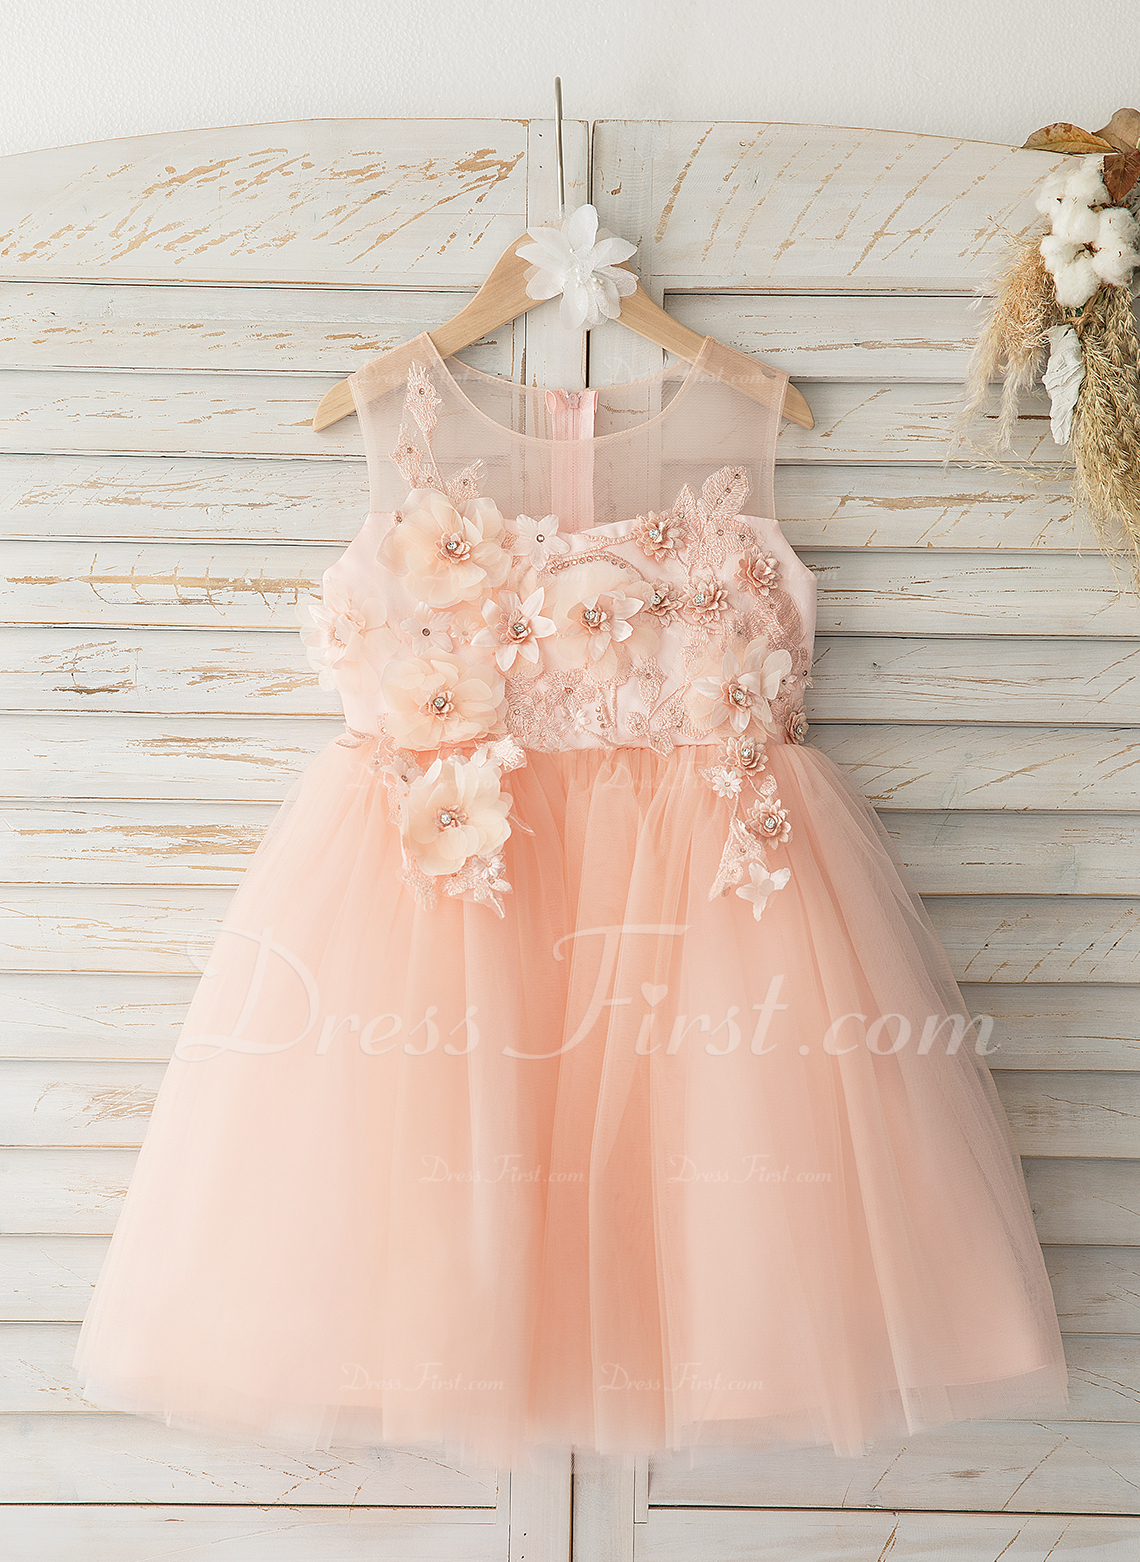 882f64eaff15 Loading zoom. Loading. Color: As Picture. A-Line Knee-length Flower Girl  Dress - Tulle/Lace Sleeveless Scoop Neck ...